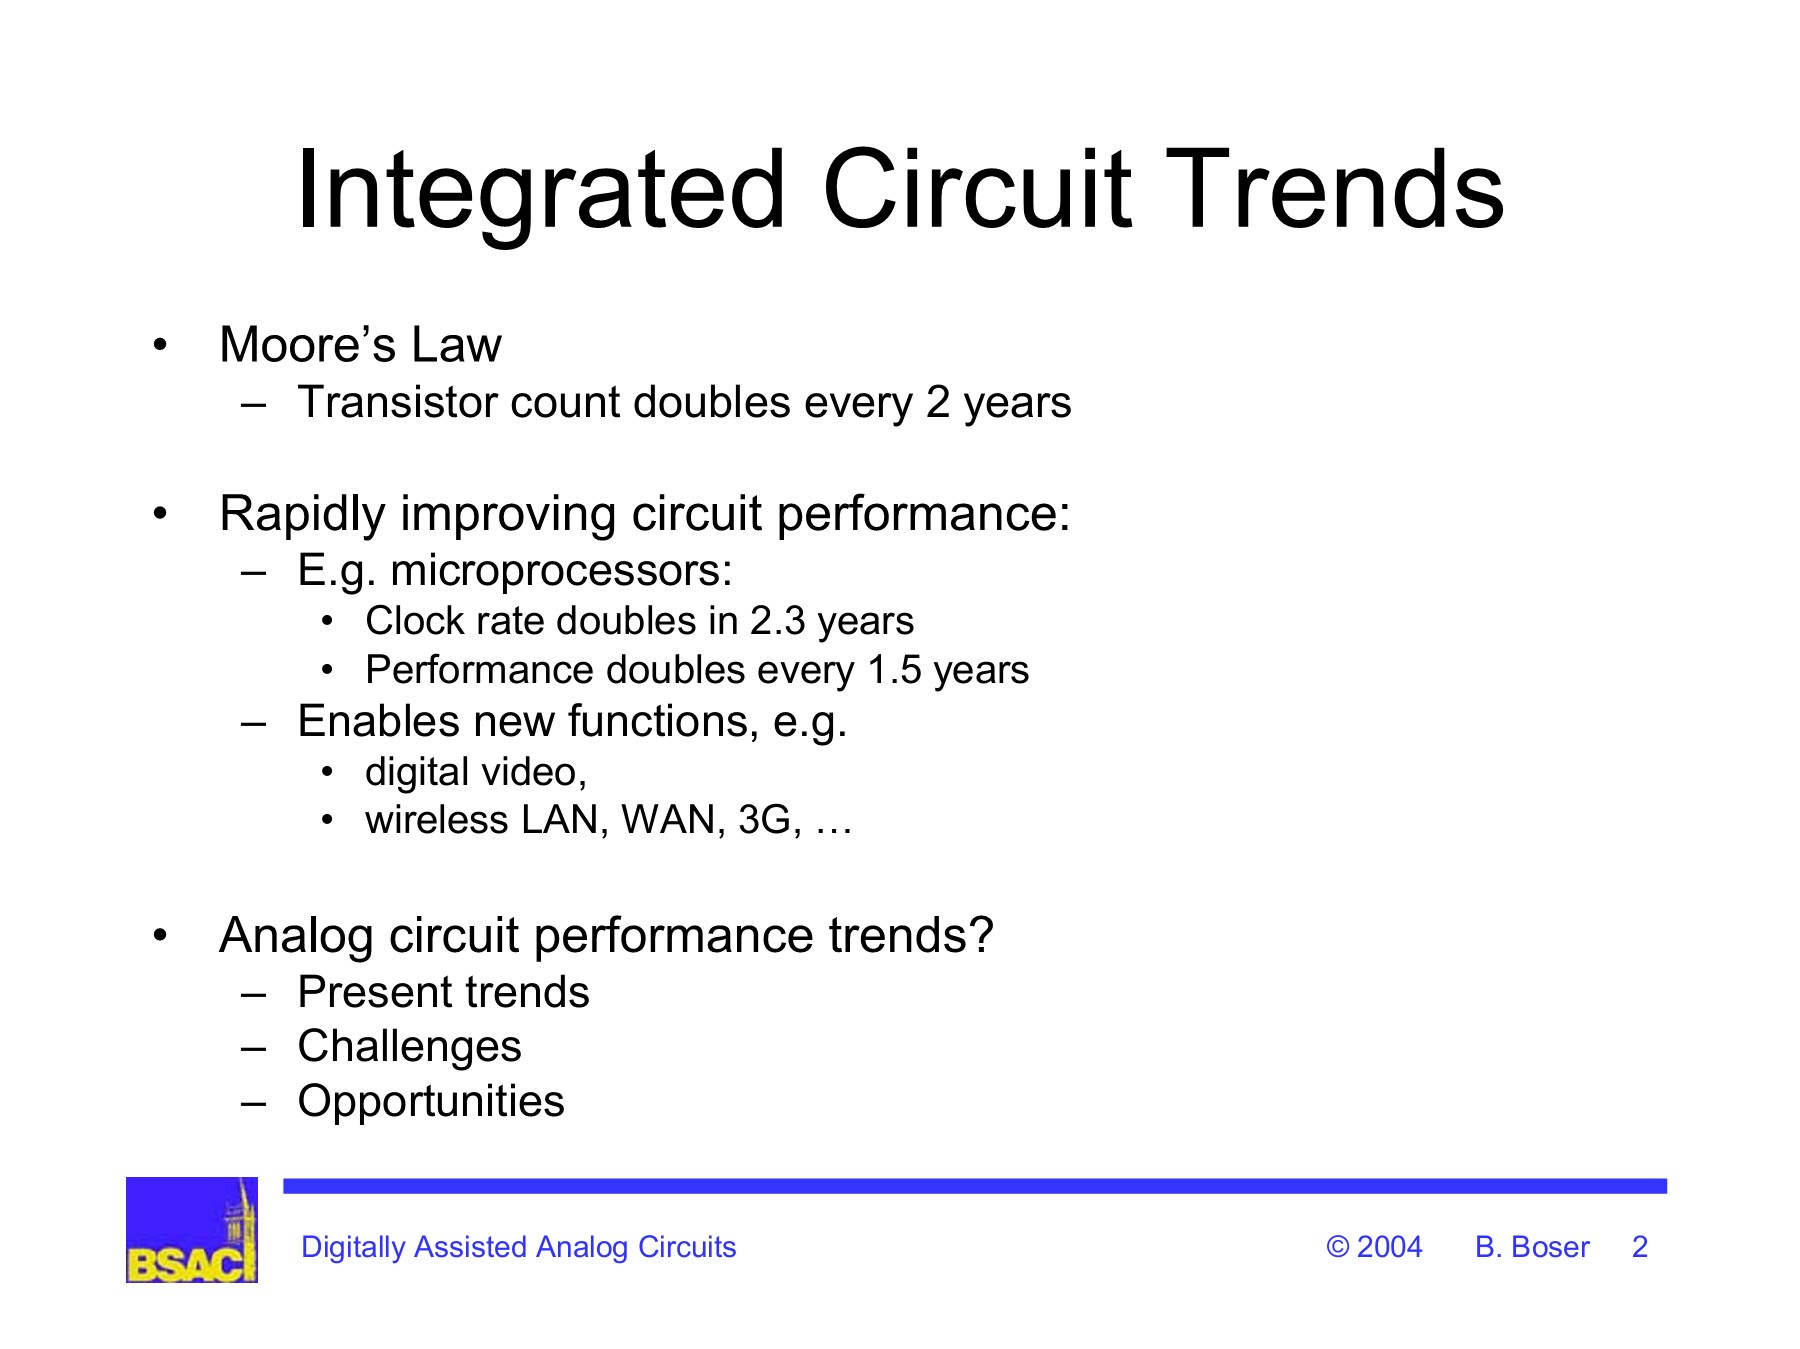 Digitally Assisted Analog Circuits Eecs At Uc Berkeley Functions Of Integrated Circuit